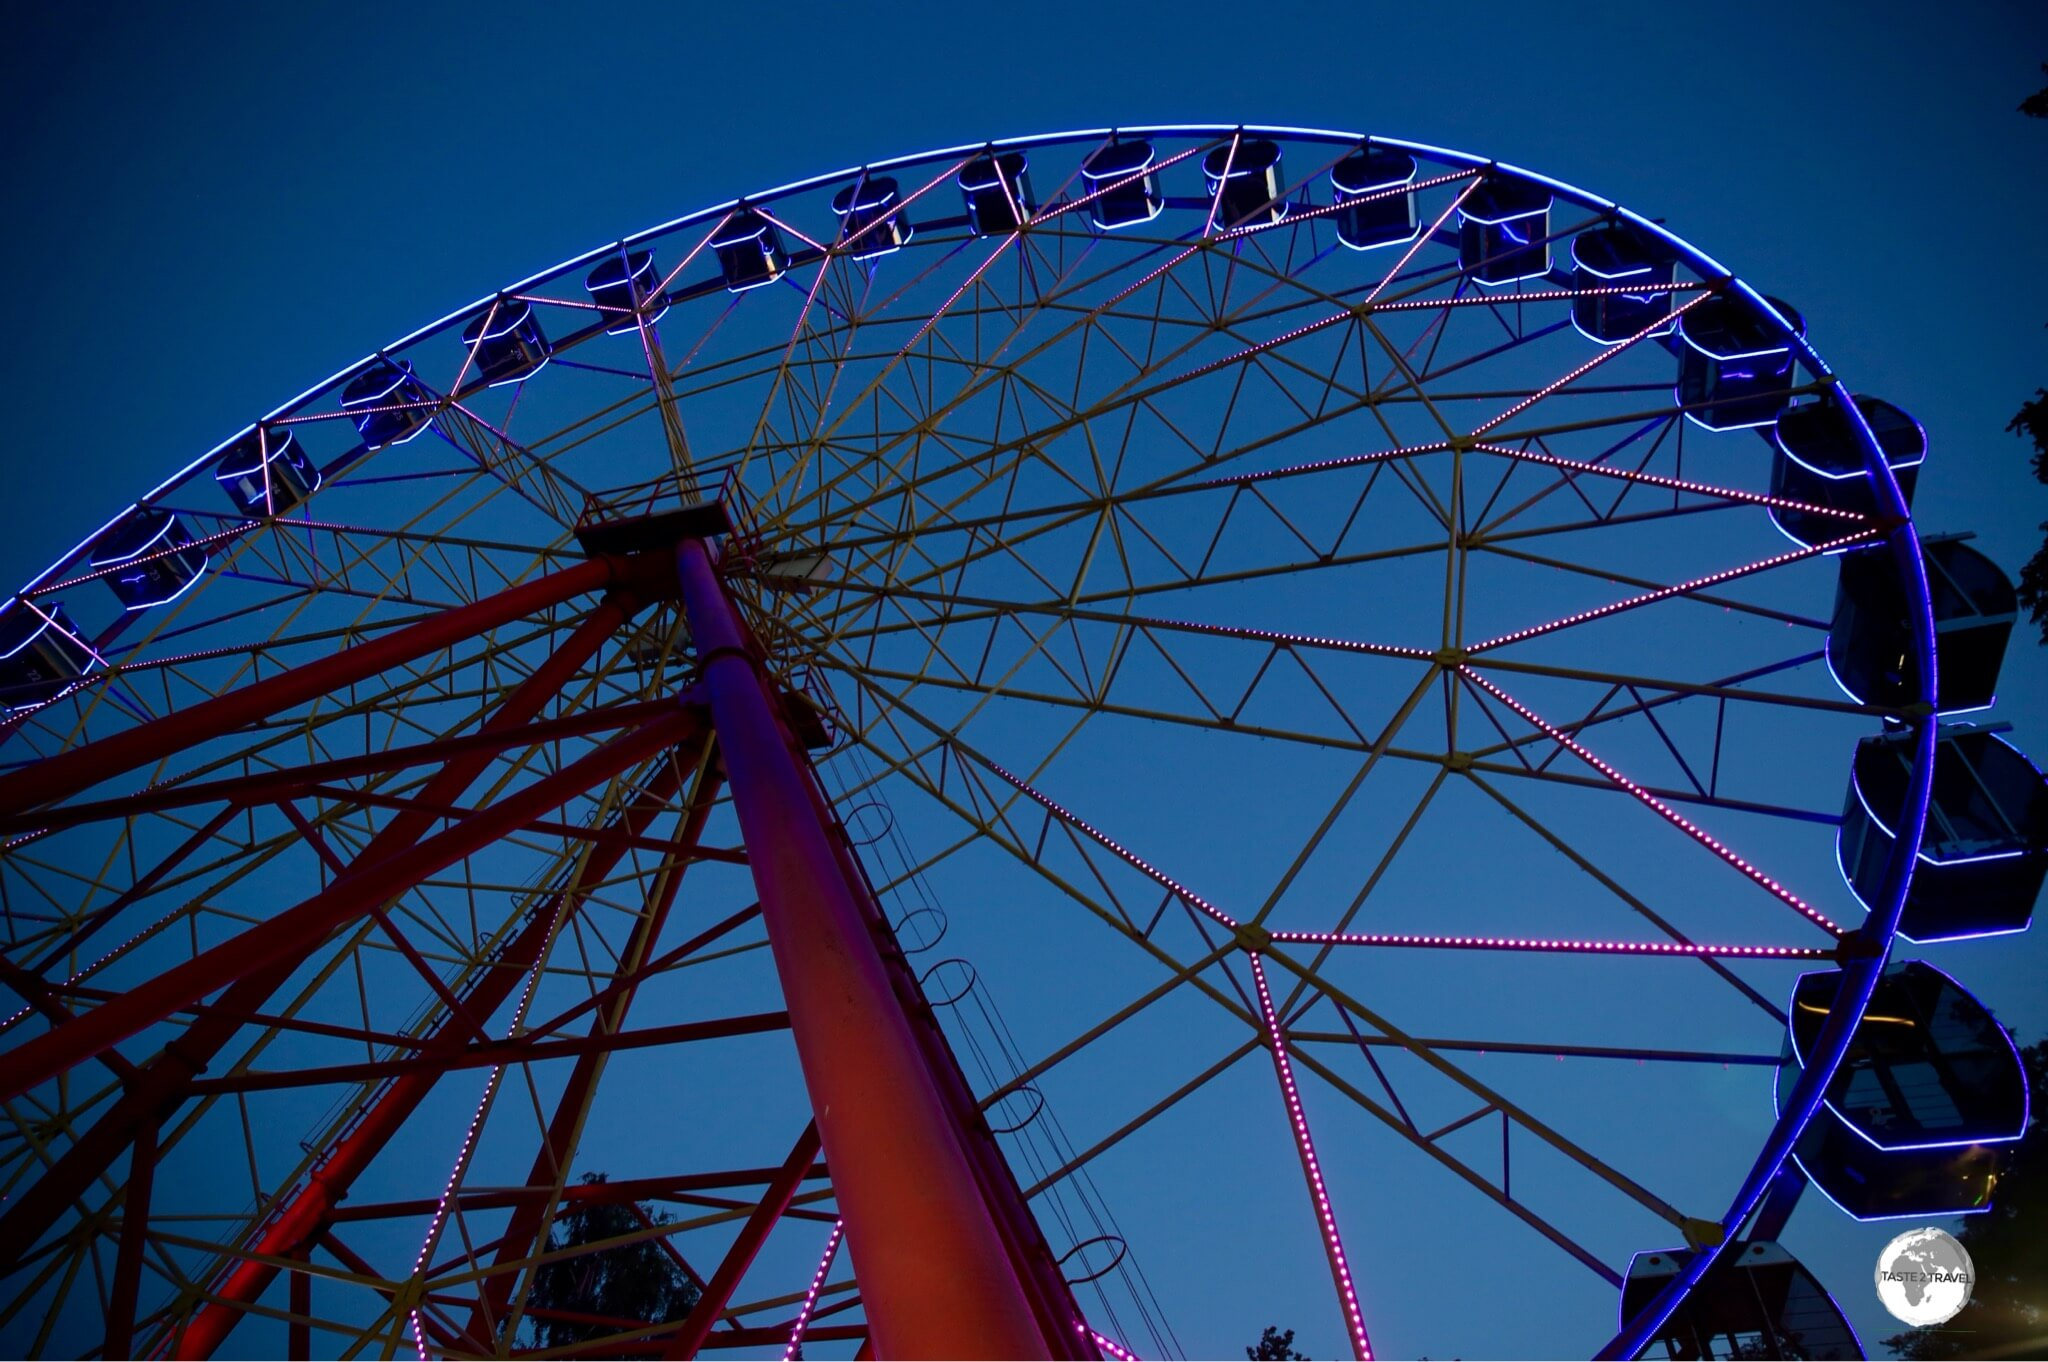 The Ferris wheel is one of many affordable amusements at Panfilov park.